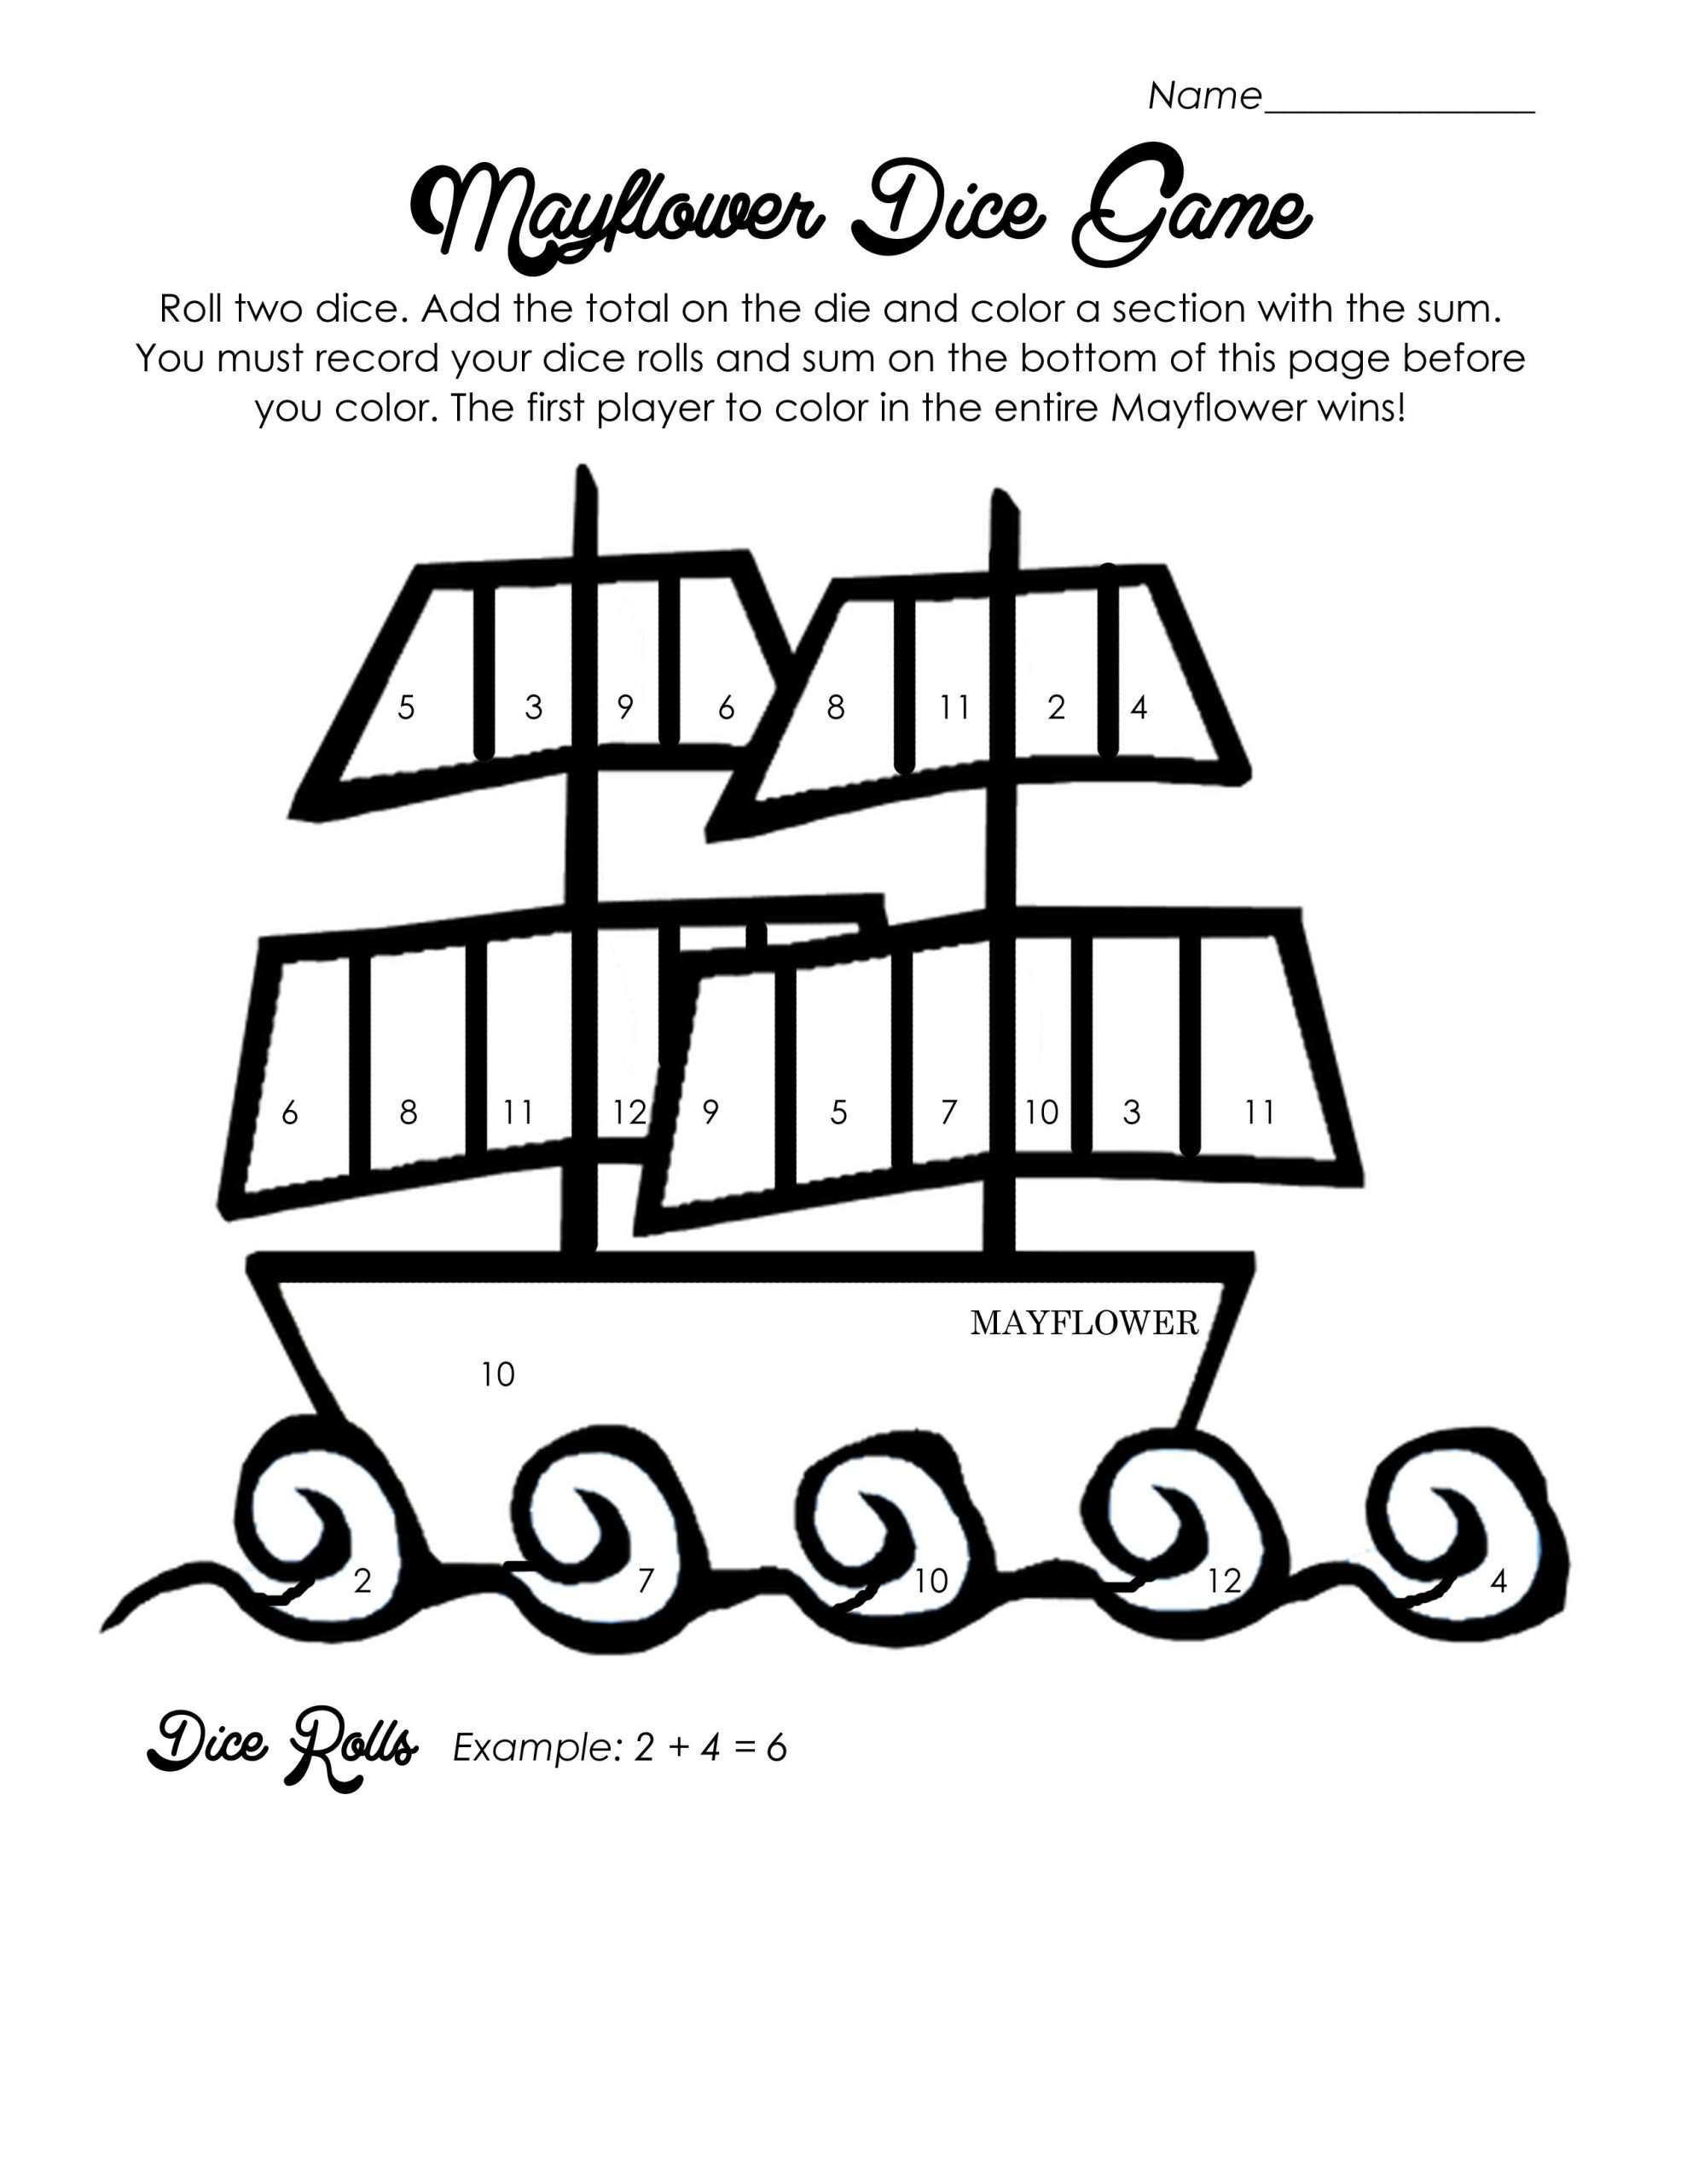 Math Dice Games Worksheets Mayflower Dice Game